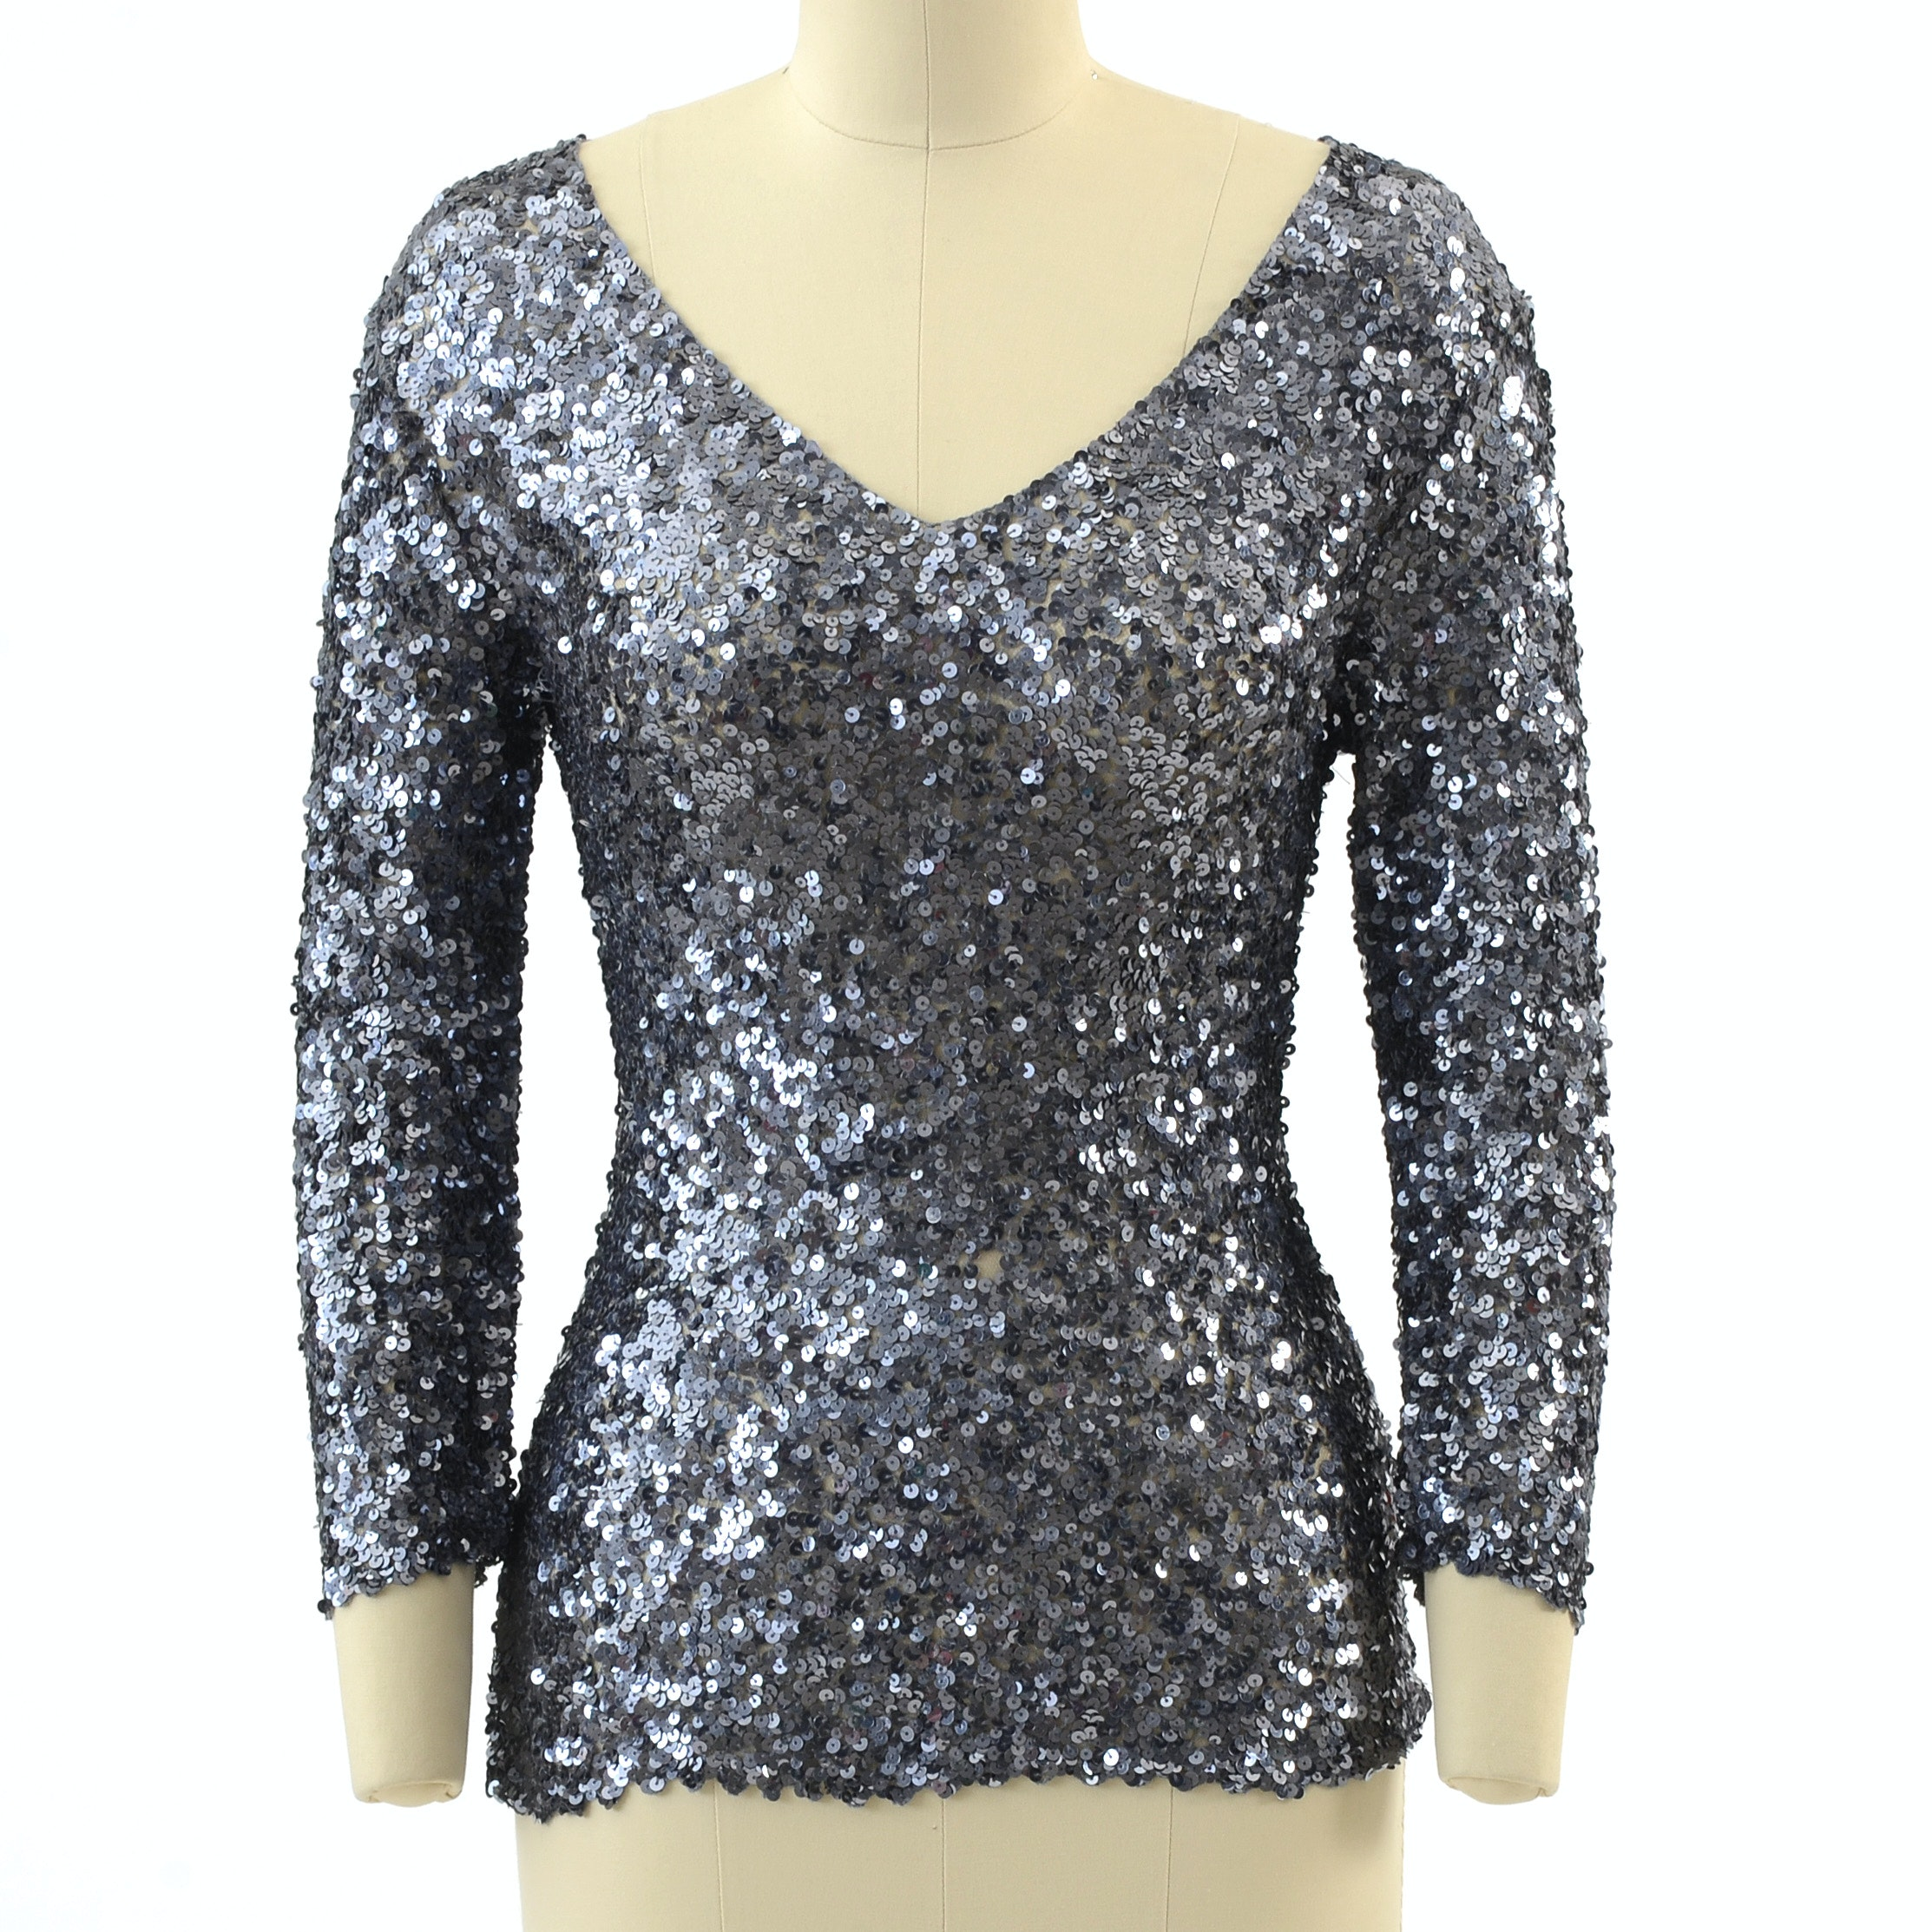 Roberta Freyman Gunmetal Grey Sequined Mesh Blouse